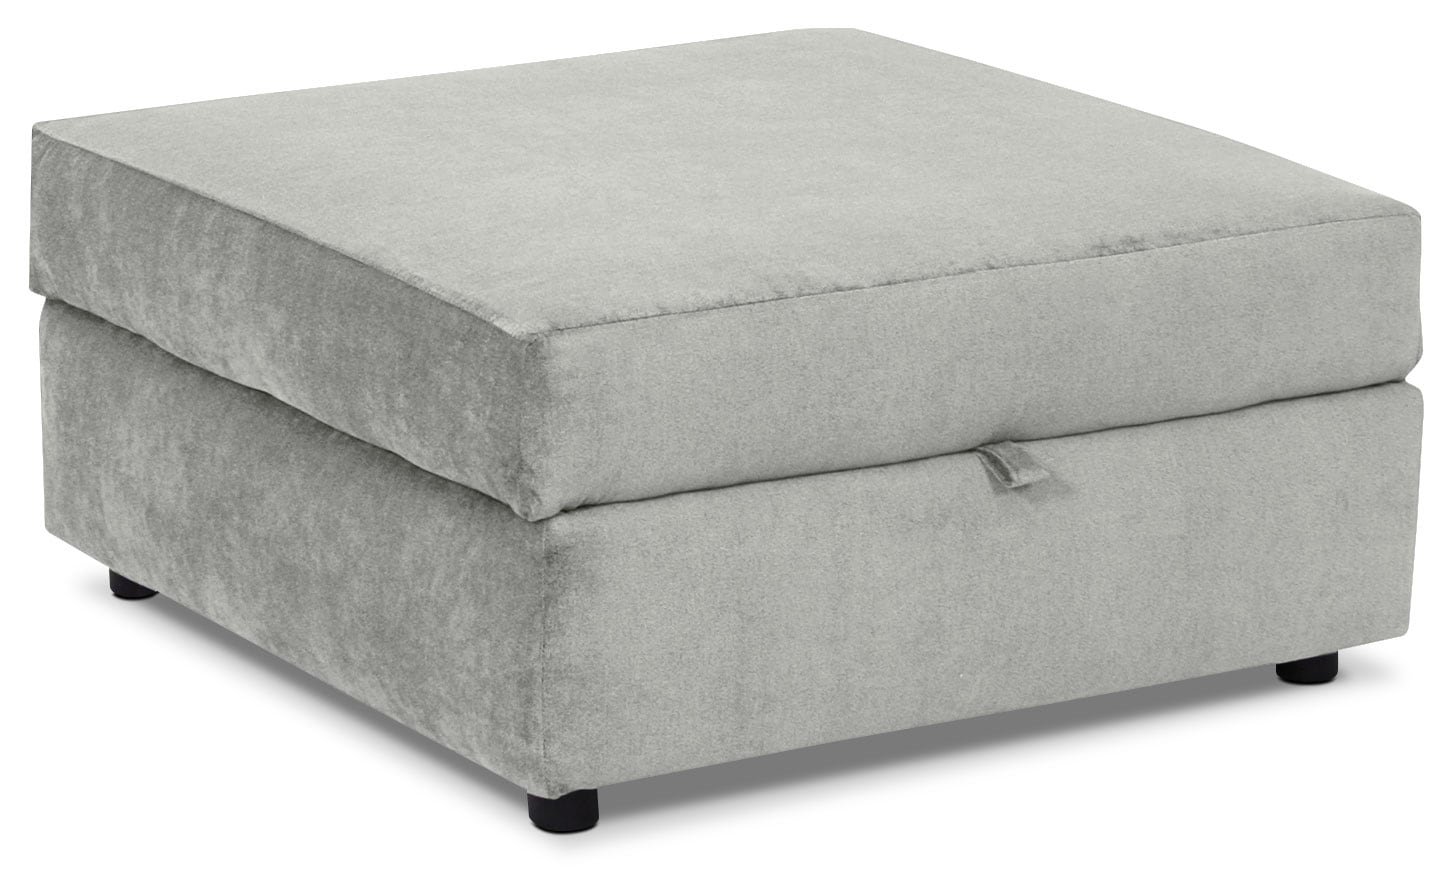 Designed2B Chenille Accent Square Storage Ottoman – Lavish Grey